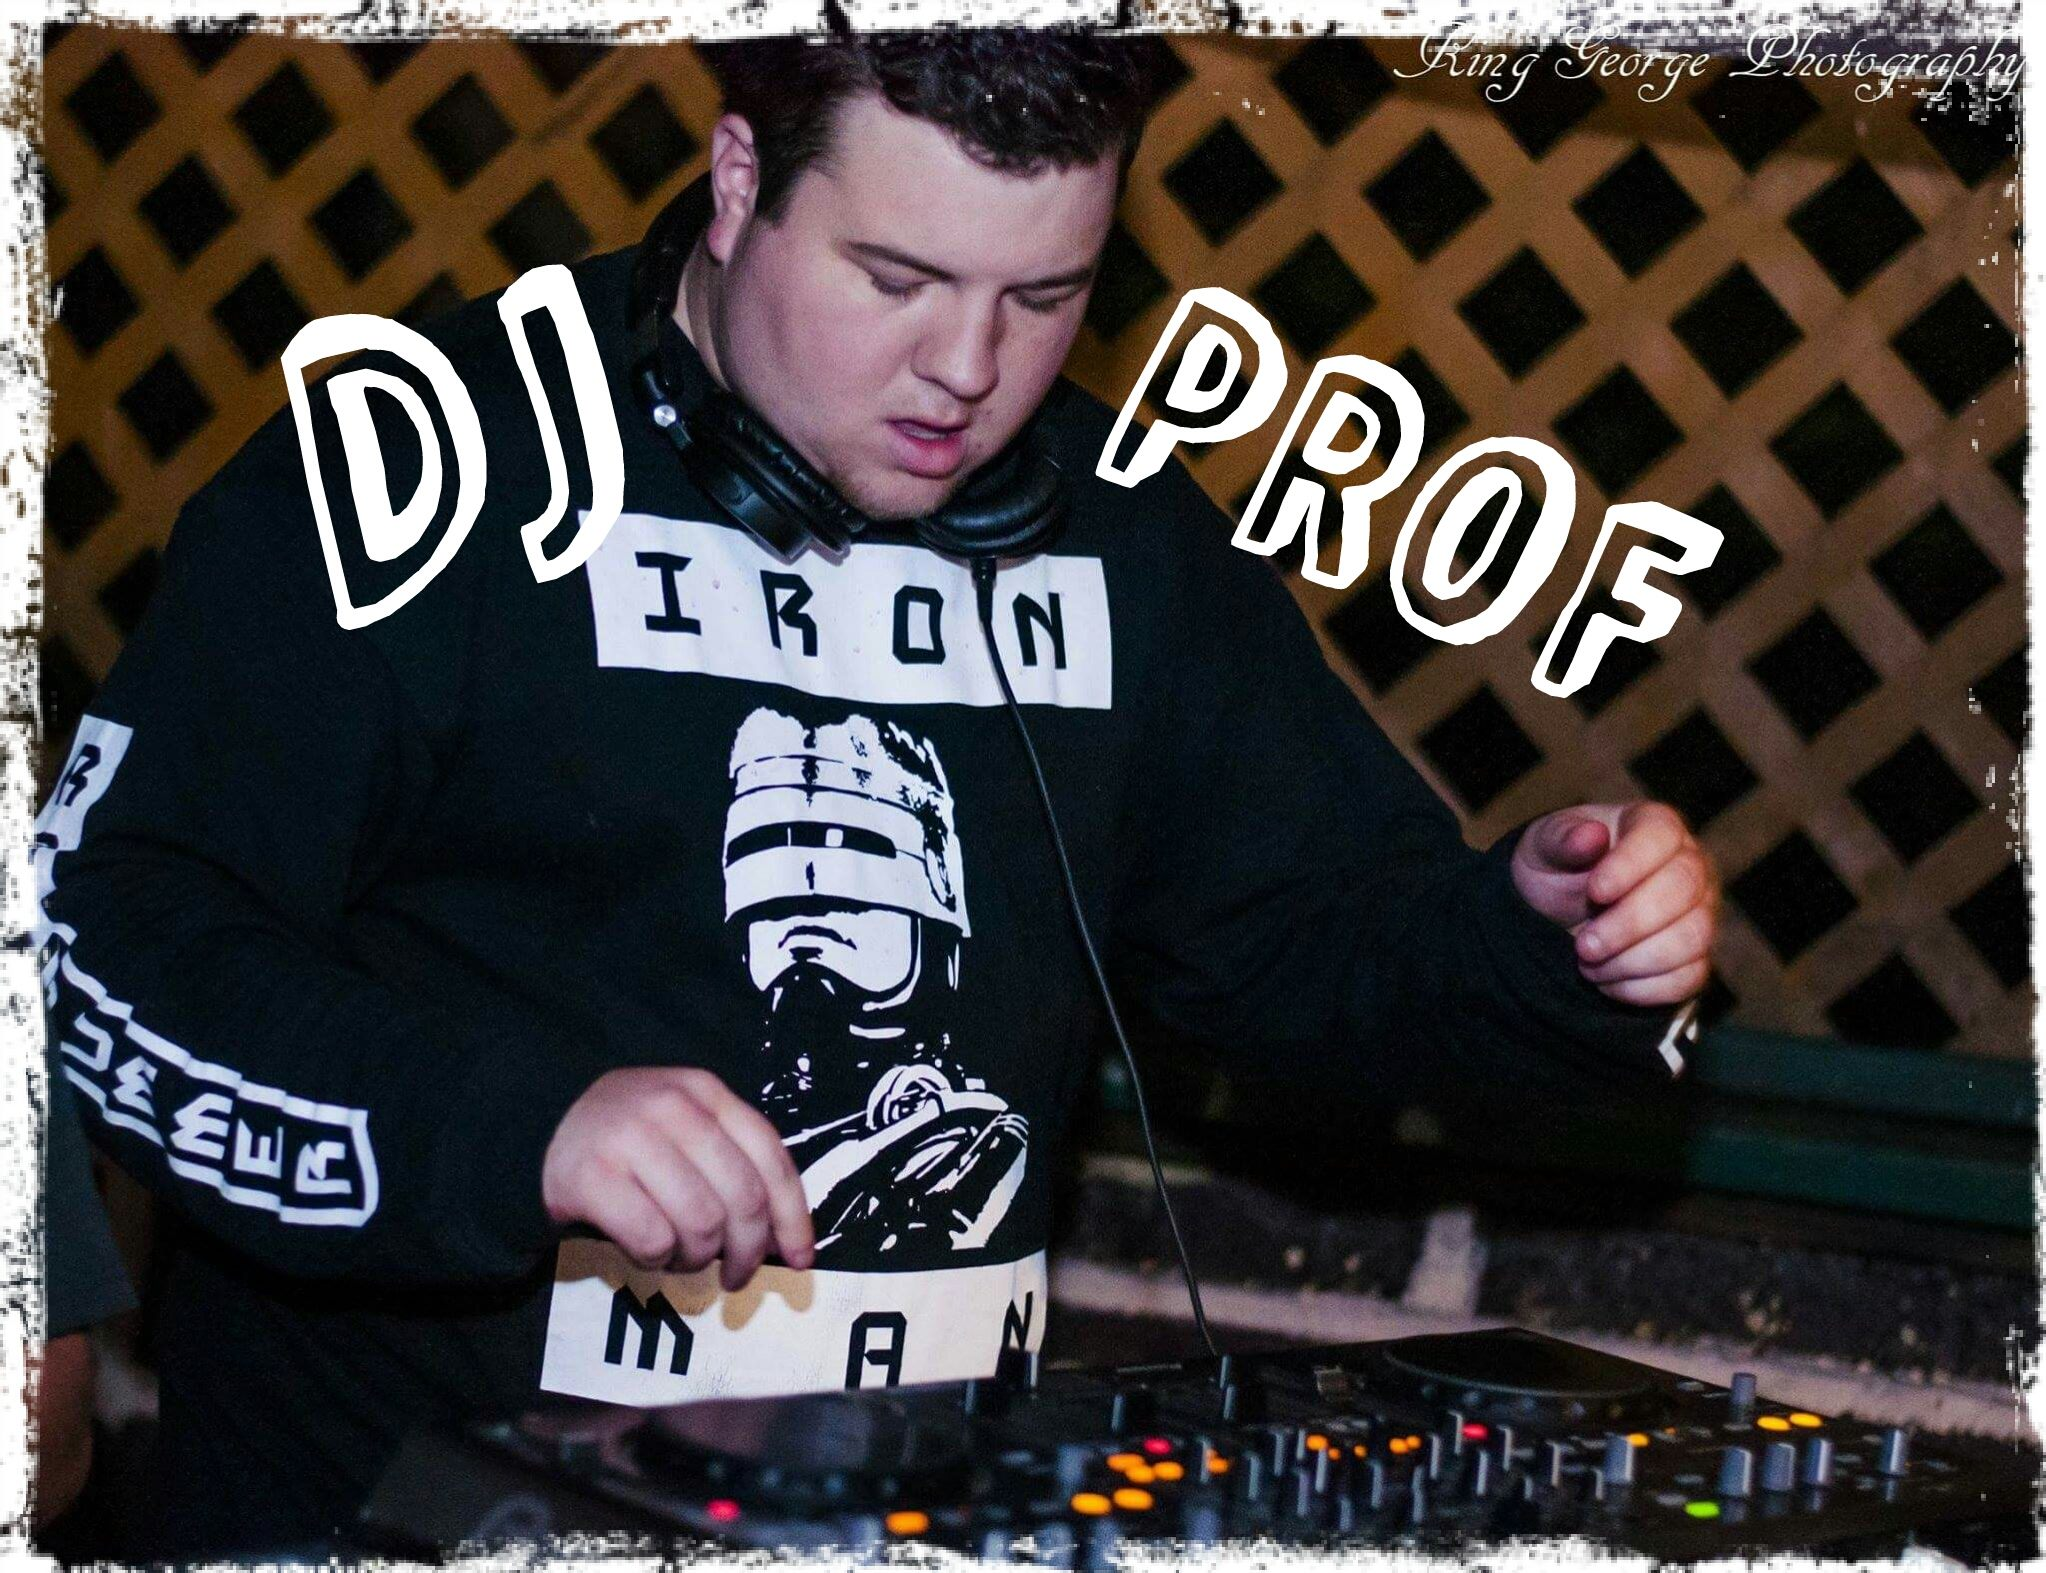 Altered Thurzdaze w/ DJ PROF - Thursday, August 3rd